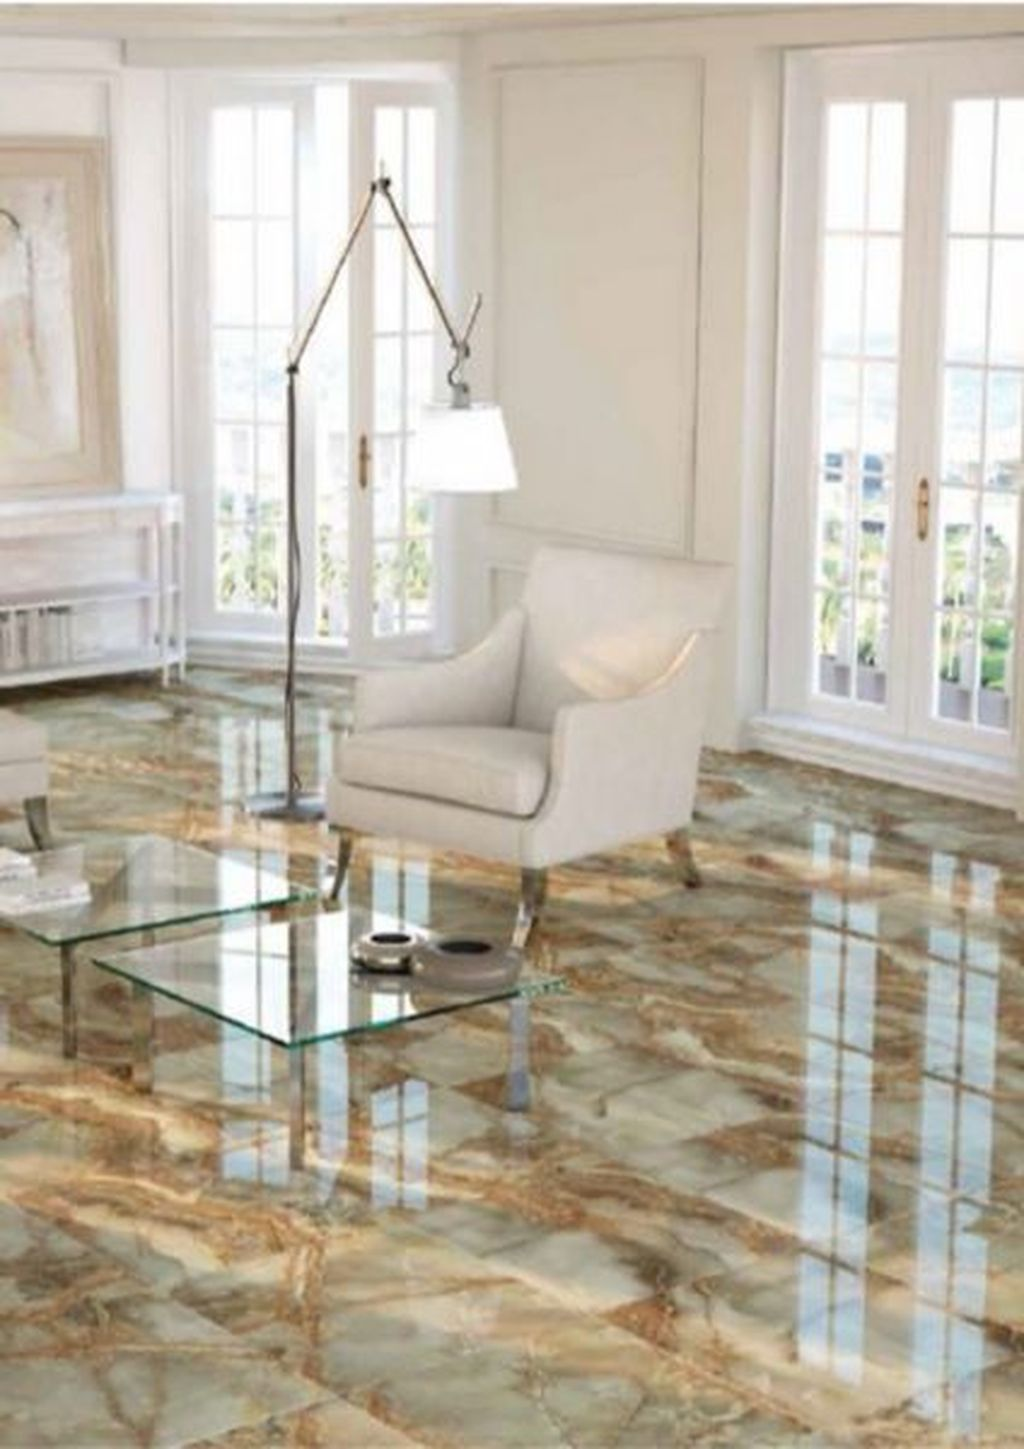 31 Chic Living Room Design Ideas With Floor Granite Tile To Have | Porcelain Flooring, Chic Living Room Design, Porcelain Floor Tiles